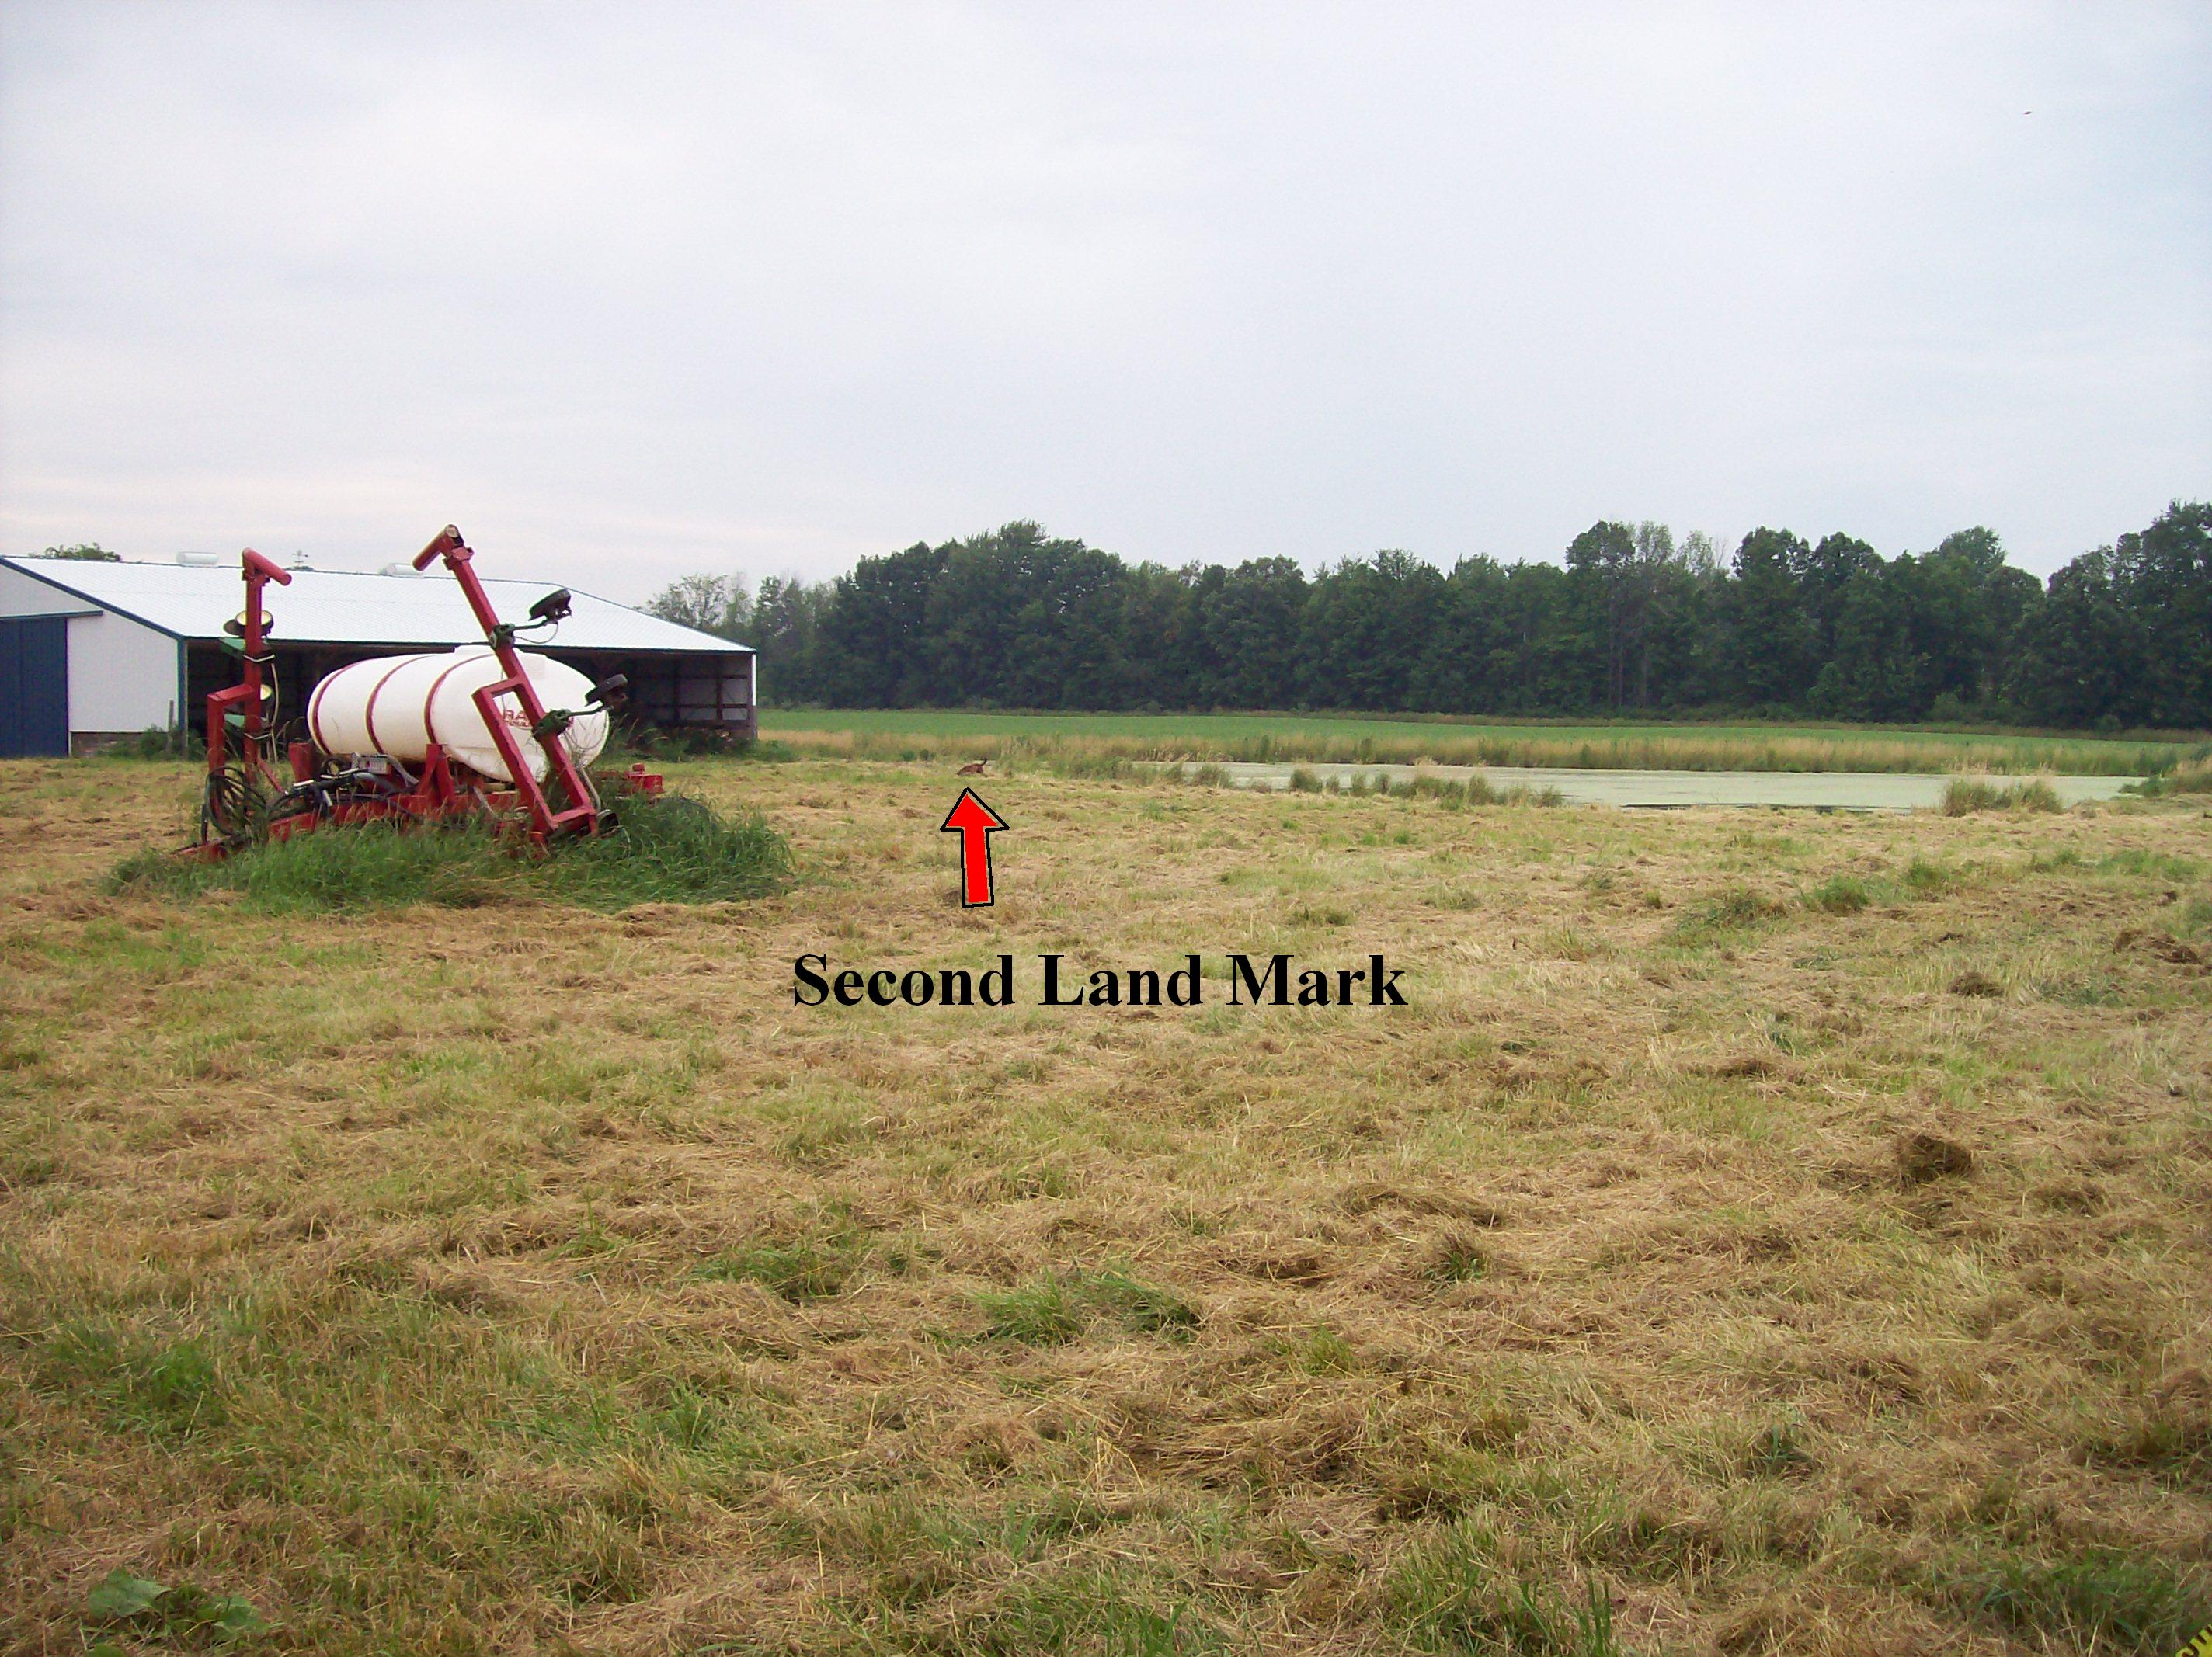 Second Land Mark